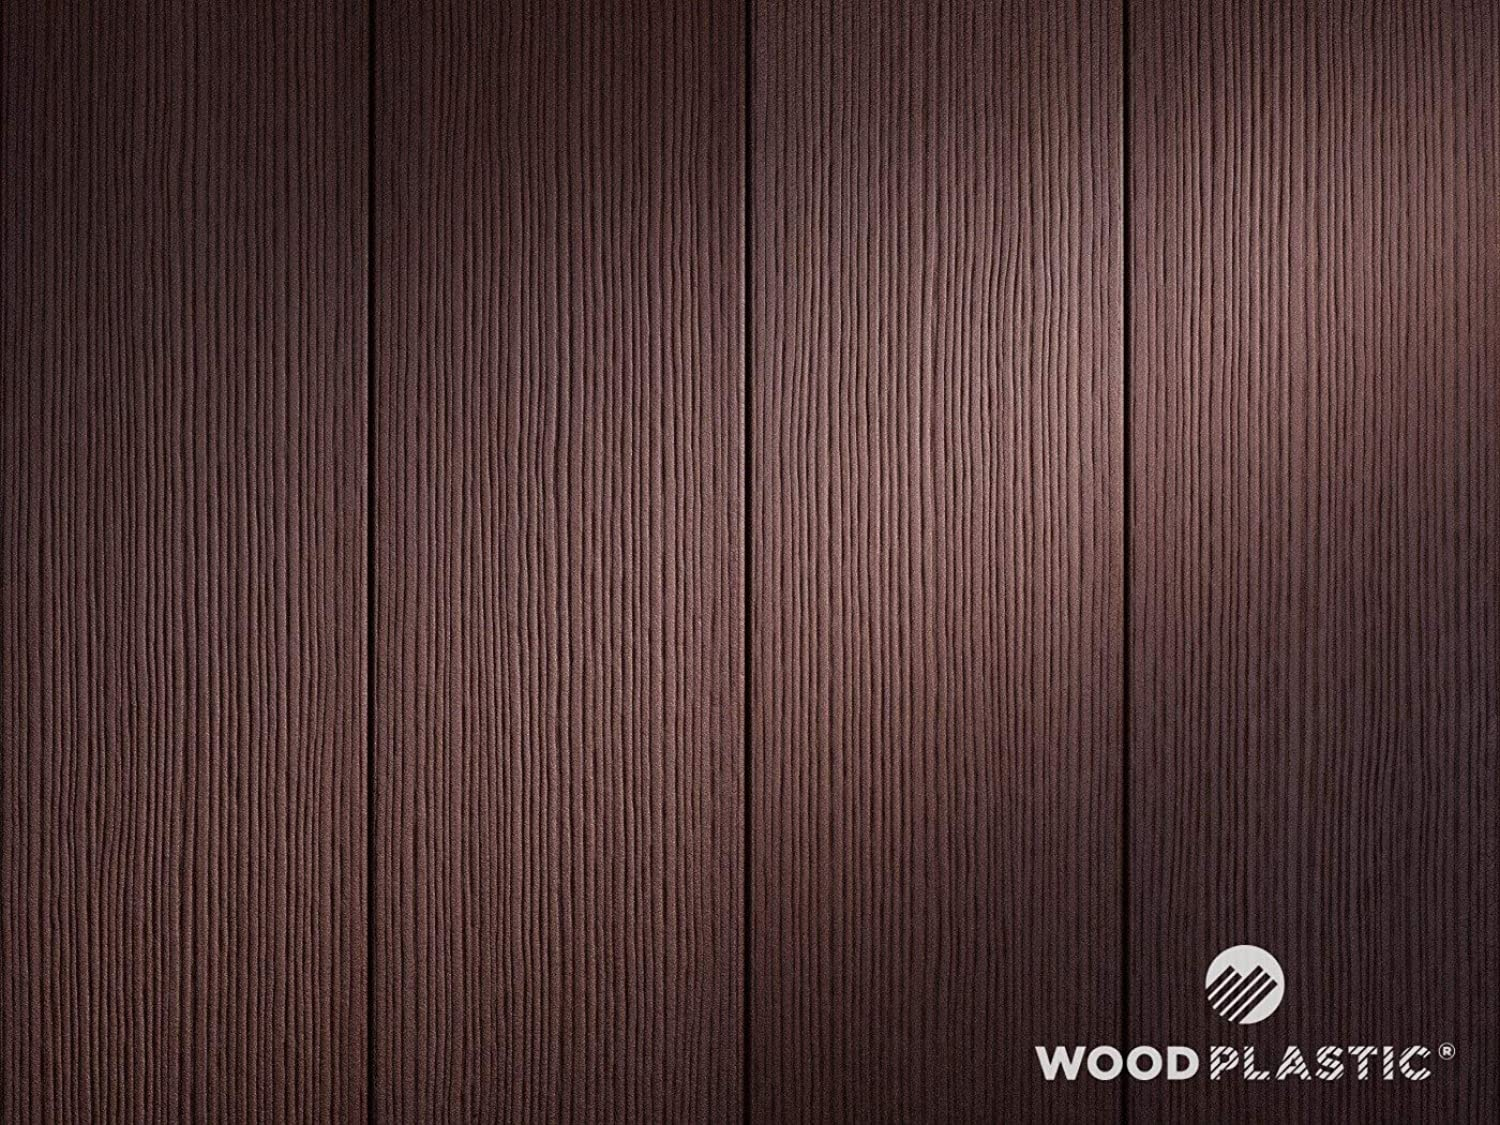 Forest Premium Max pinkwood Palisander  Premium WoodPlastic Composite Decking 195 x 22mm x 4.0mtr PEFC Certified and CE Marked